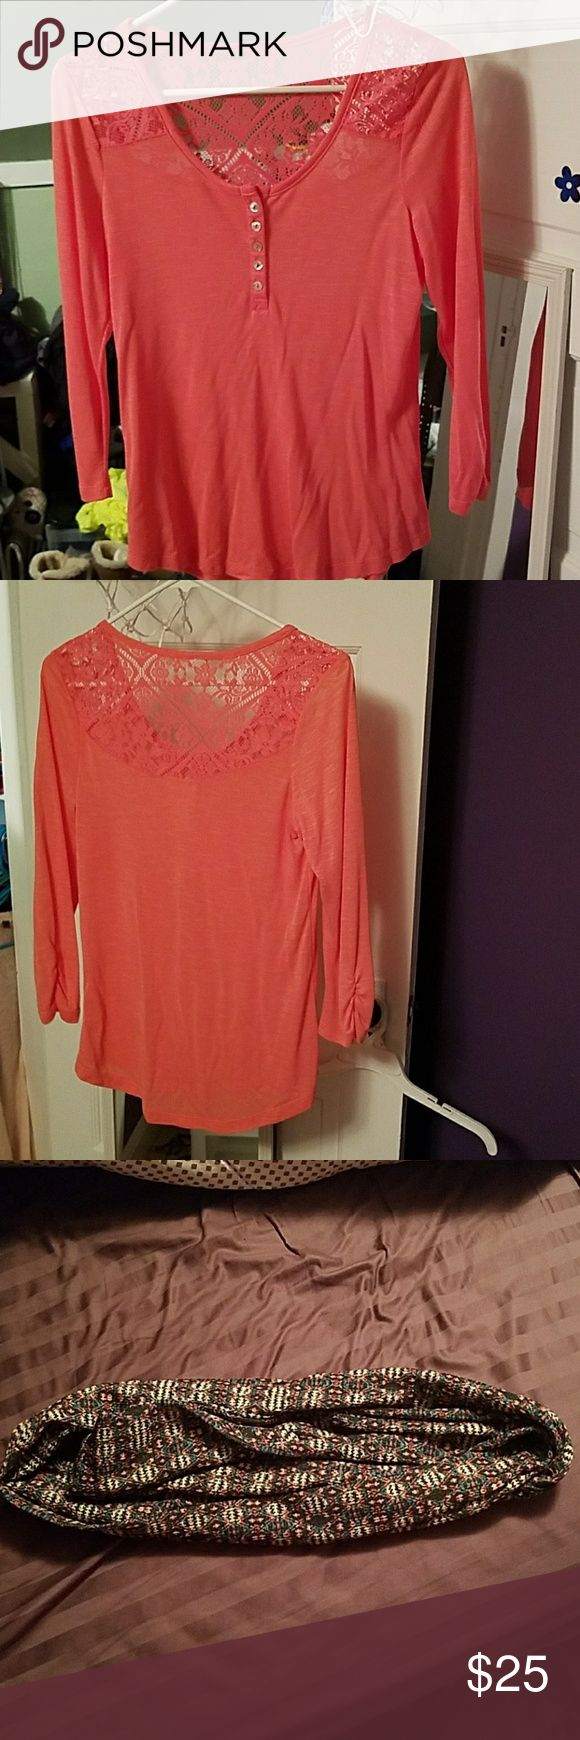 Coral Shirt and scarf Coral shirt and scarf, only worn a handful of times. Basically brand new. Neon Soul Tops